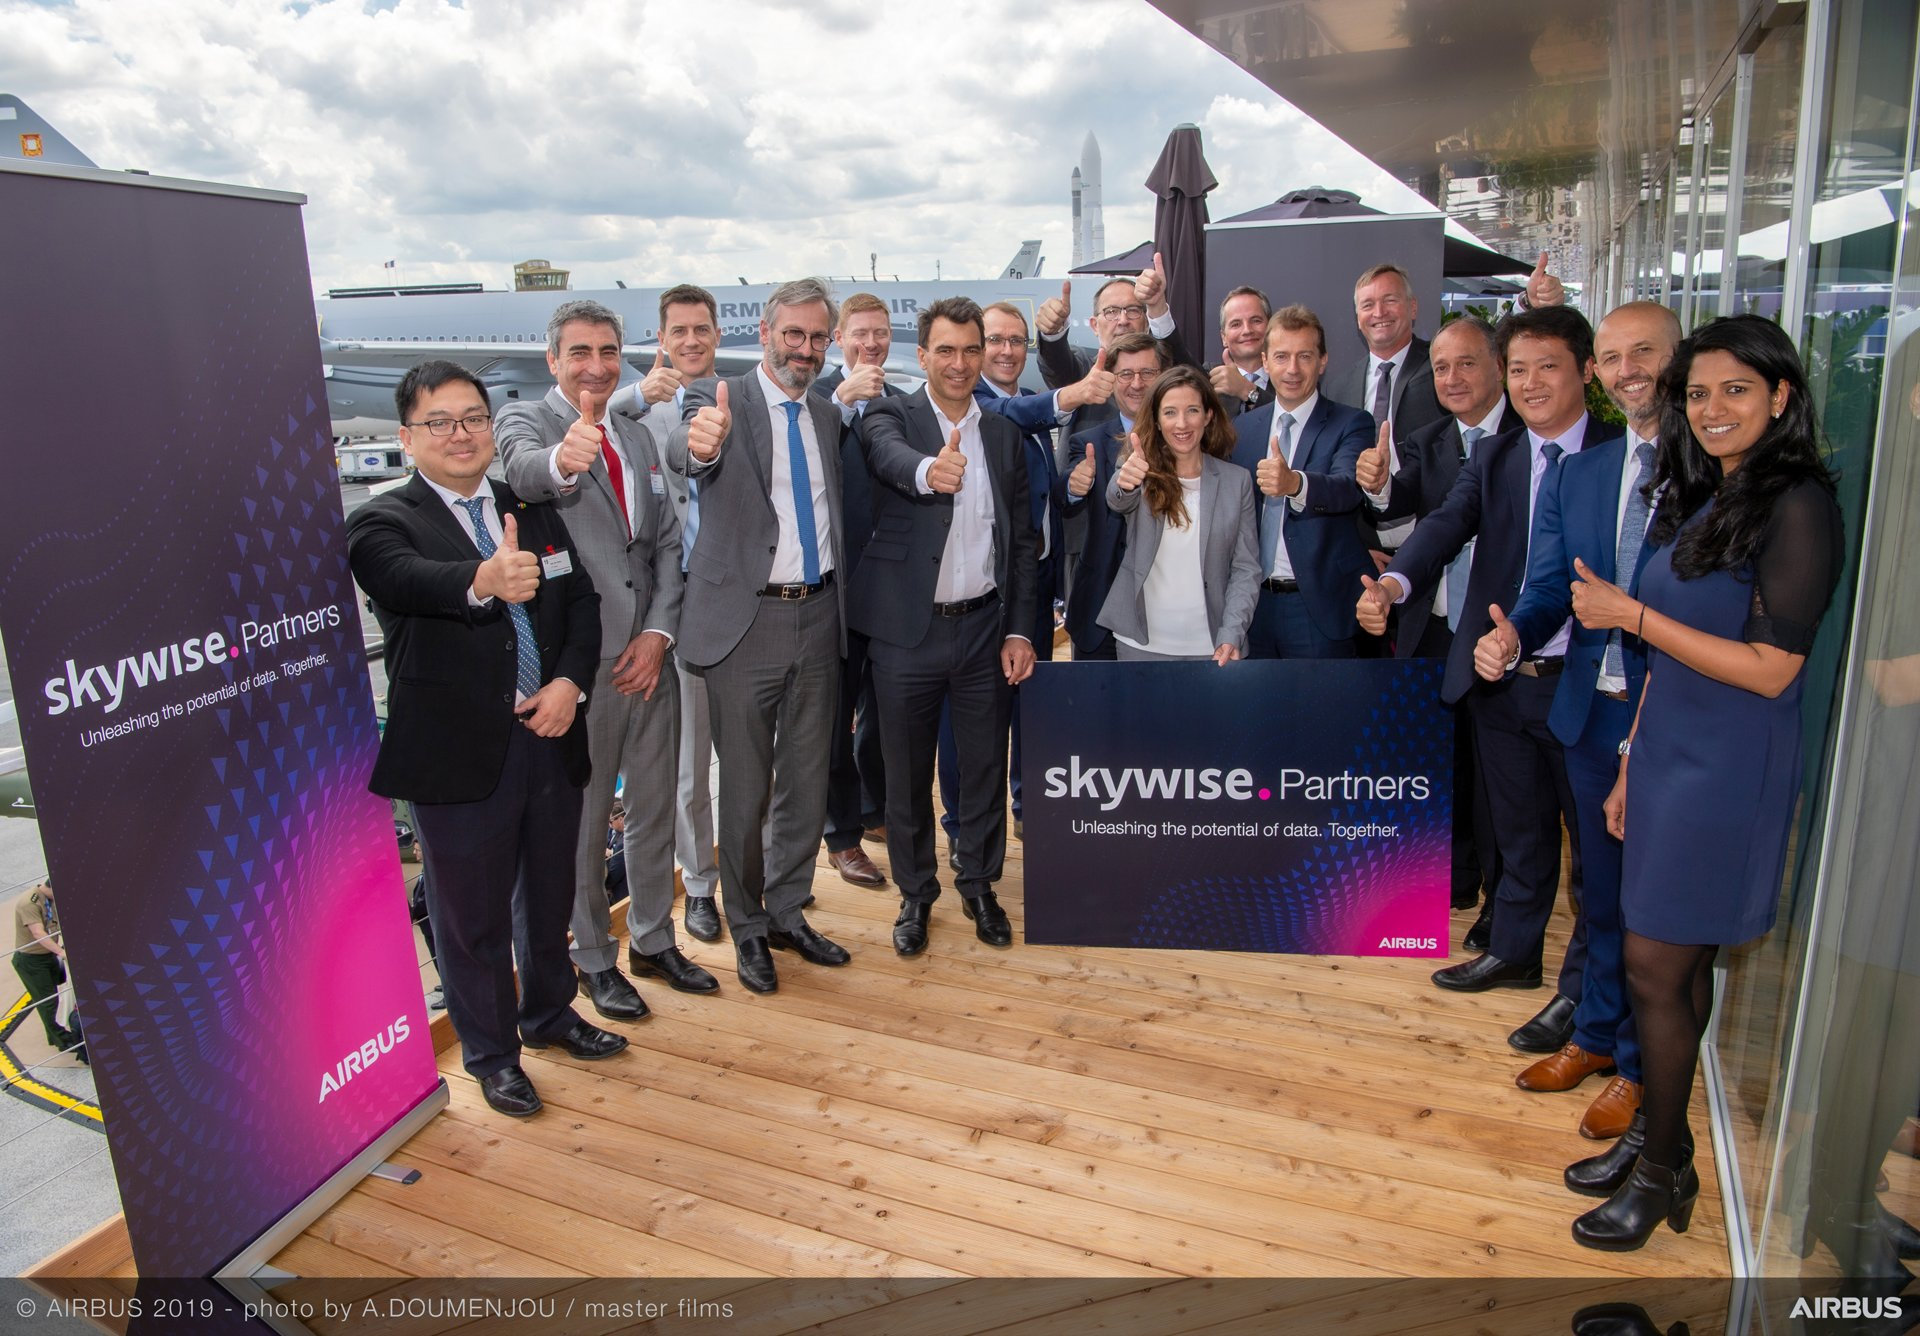 Accenture, Capgemini, FPT Software, IBM, and Sopra Steria will become early adopters of the Skywise Partner Programme after signing agreements with Airbus; the partners celebrate these signings with Airbus CEO Guillaume Faury, Digital Transformation Officer Marc Fontaine and Julie Kitcher, Executive Vice-President Communications and Corporate Affairs